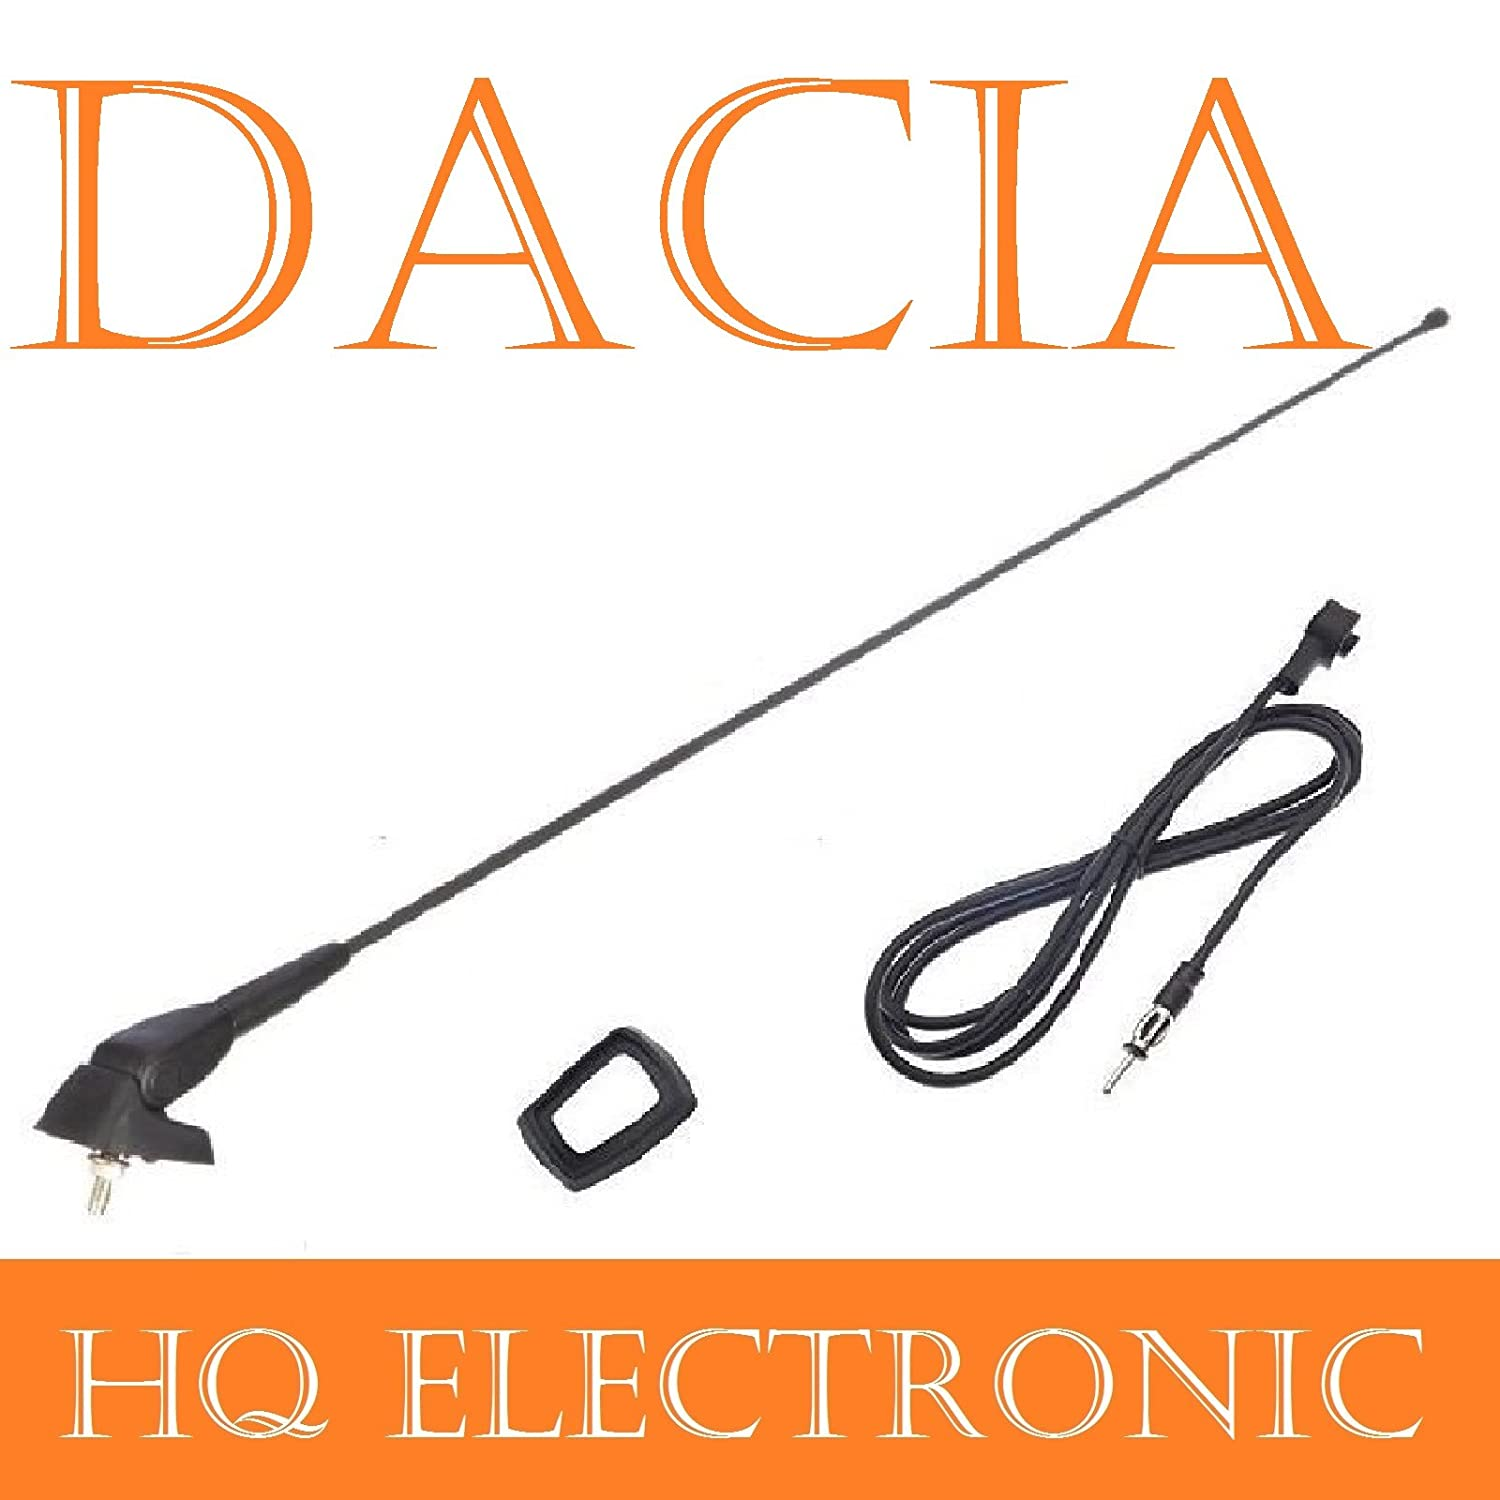 DACIA LOGAN//Lodgy Duster Sandero Roof Antenna with Antenna Base and Gasket